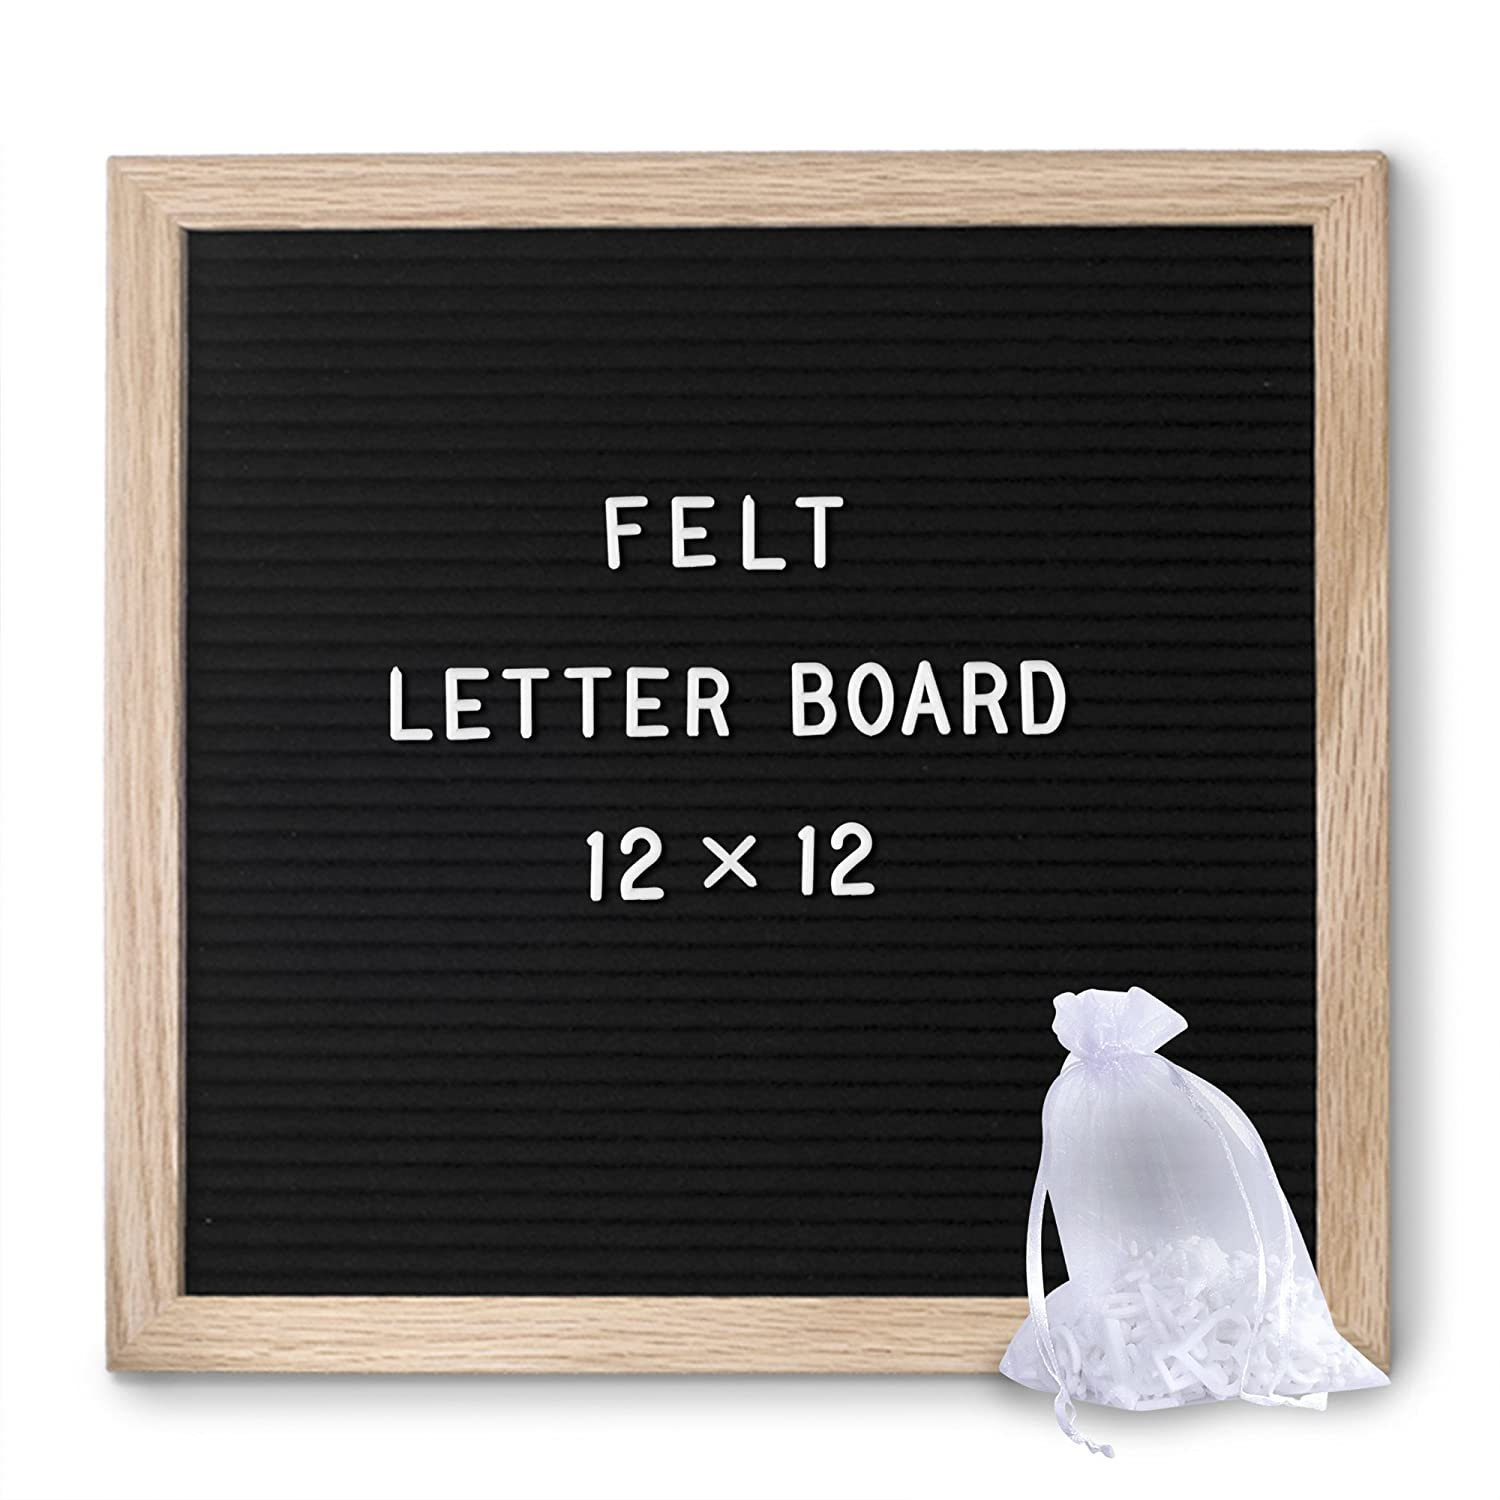 felt letter board black modern 12x12 picture stand and wall hook oak wood frame